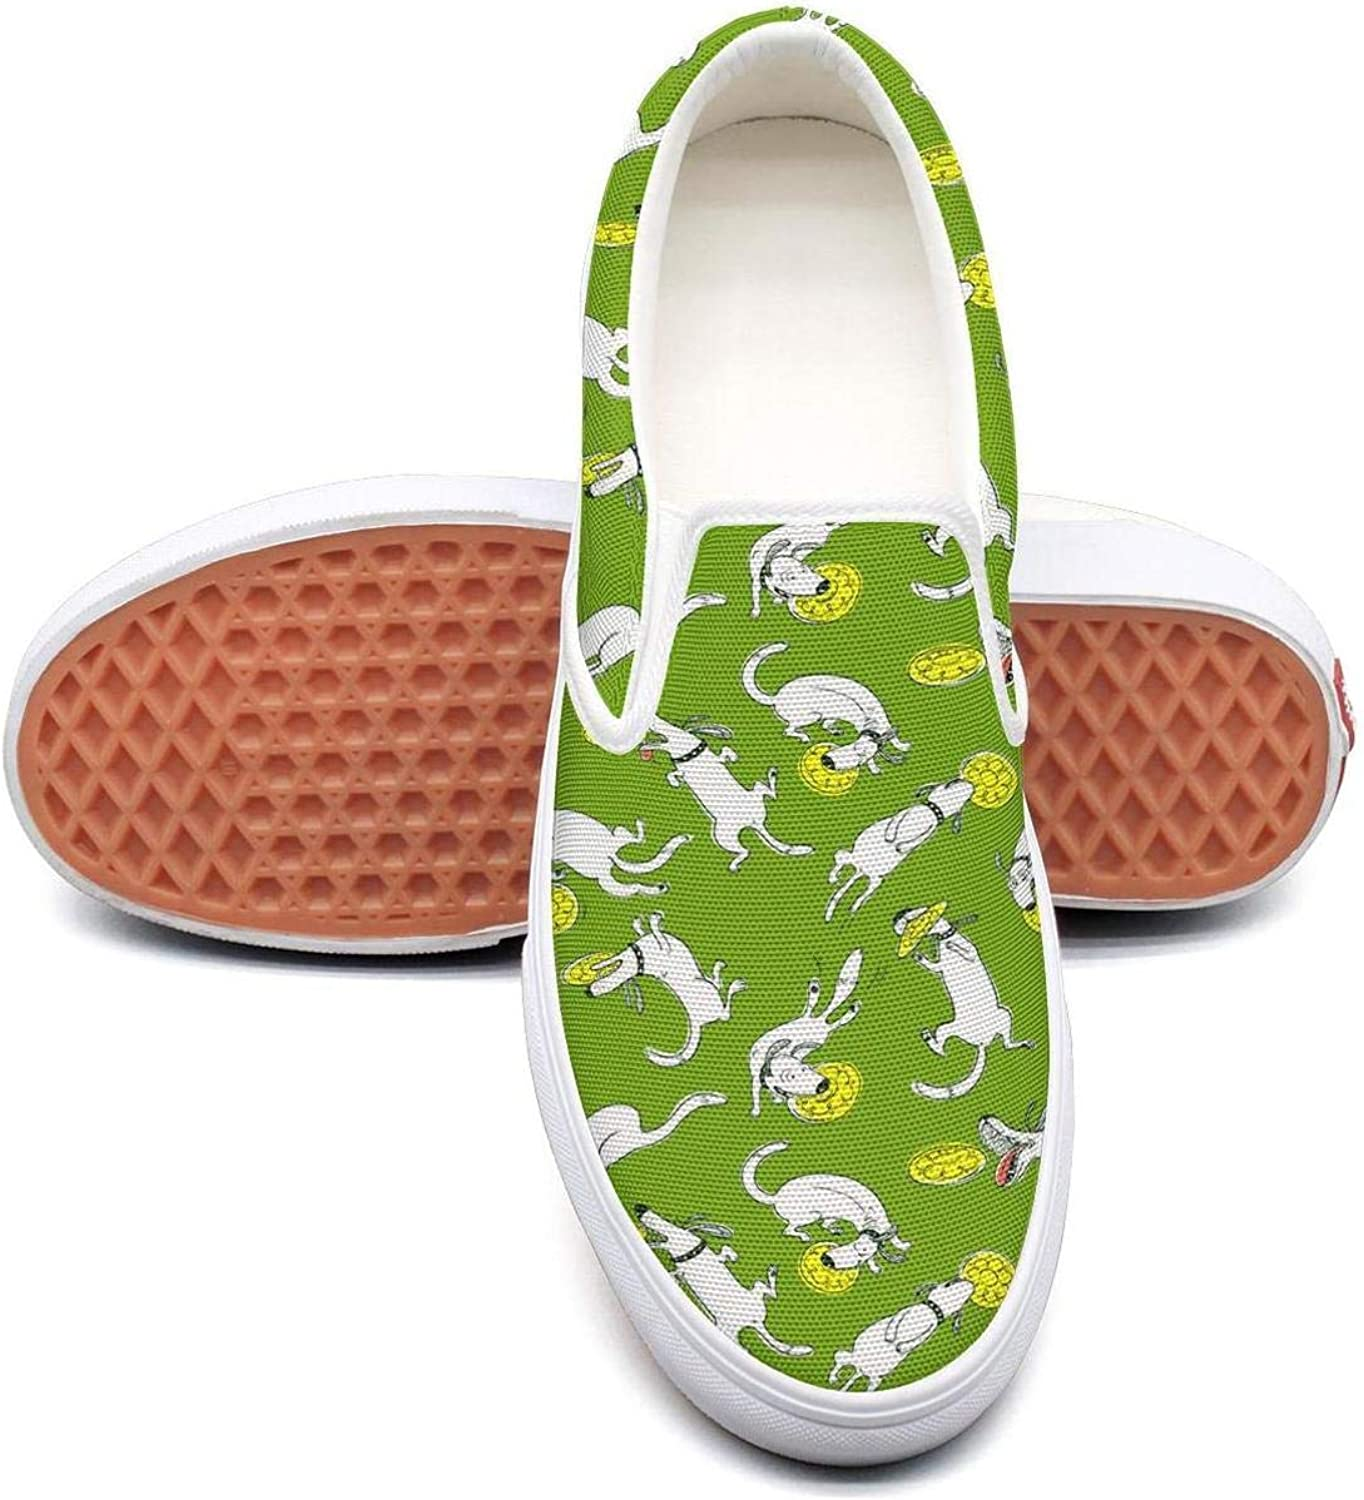 Uieort Lighweight Dog Puppy Skin Dalmatian Mens Slip On Canvas shoes Lightweight